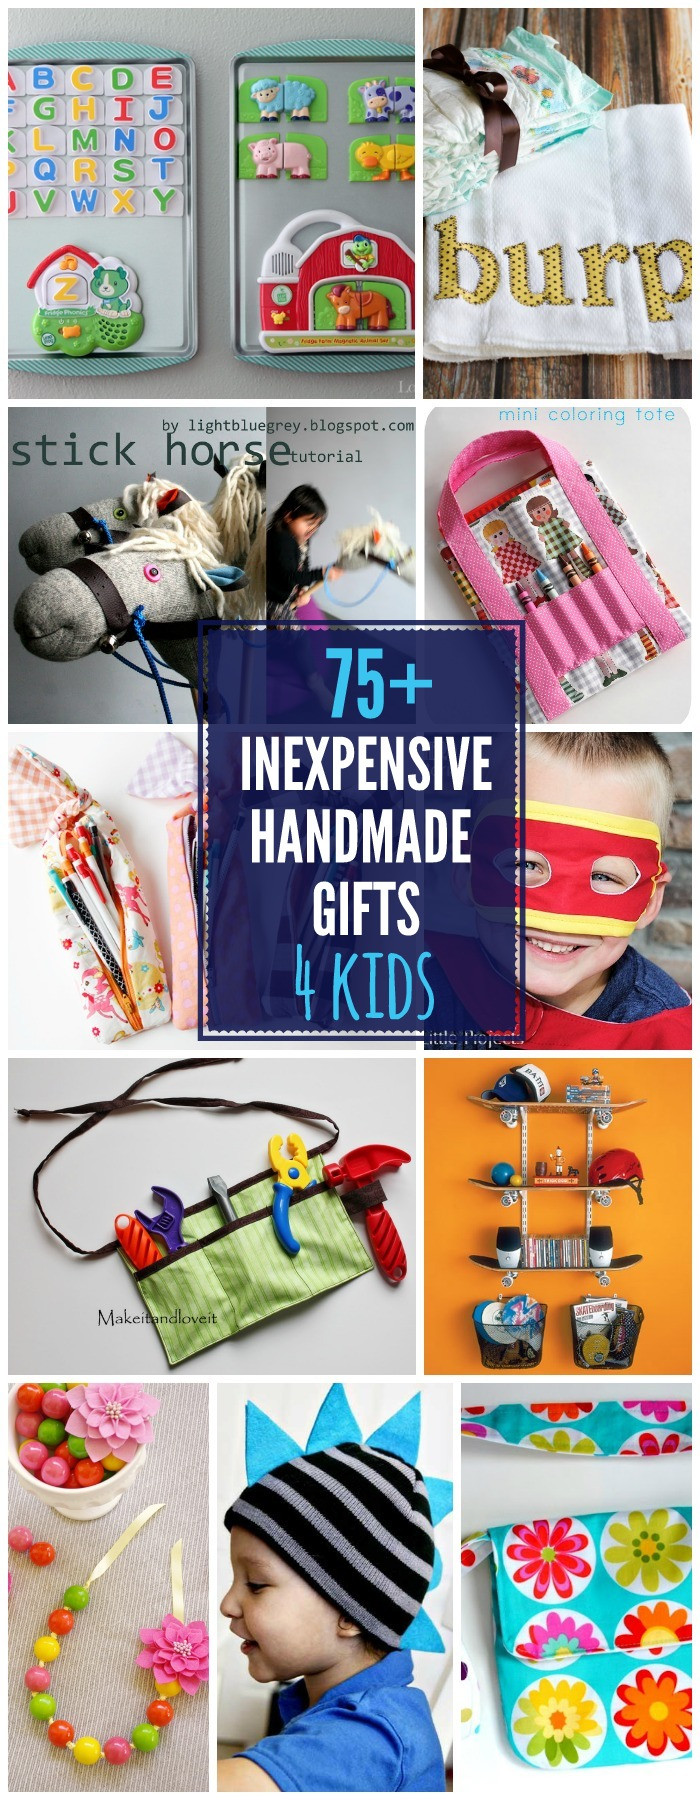 Best ideas about DIY Gift Ideas For Kids . Save or Pin Inexpensive Gift Ideas Now.